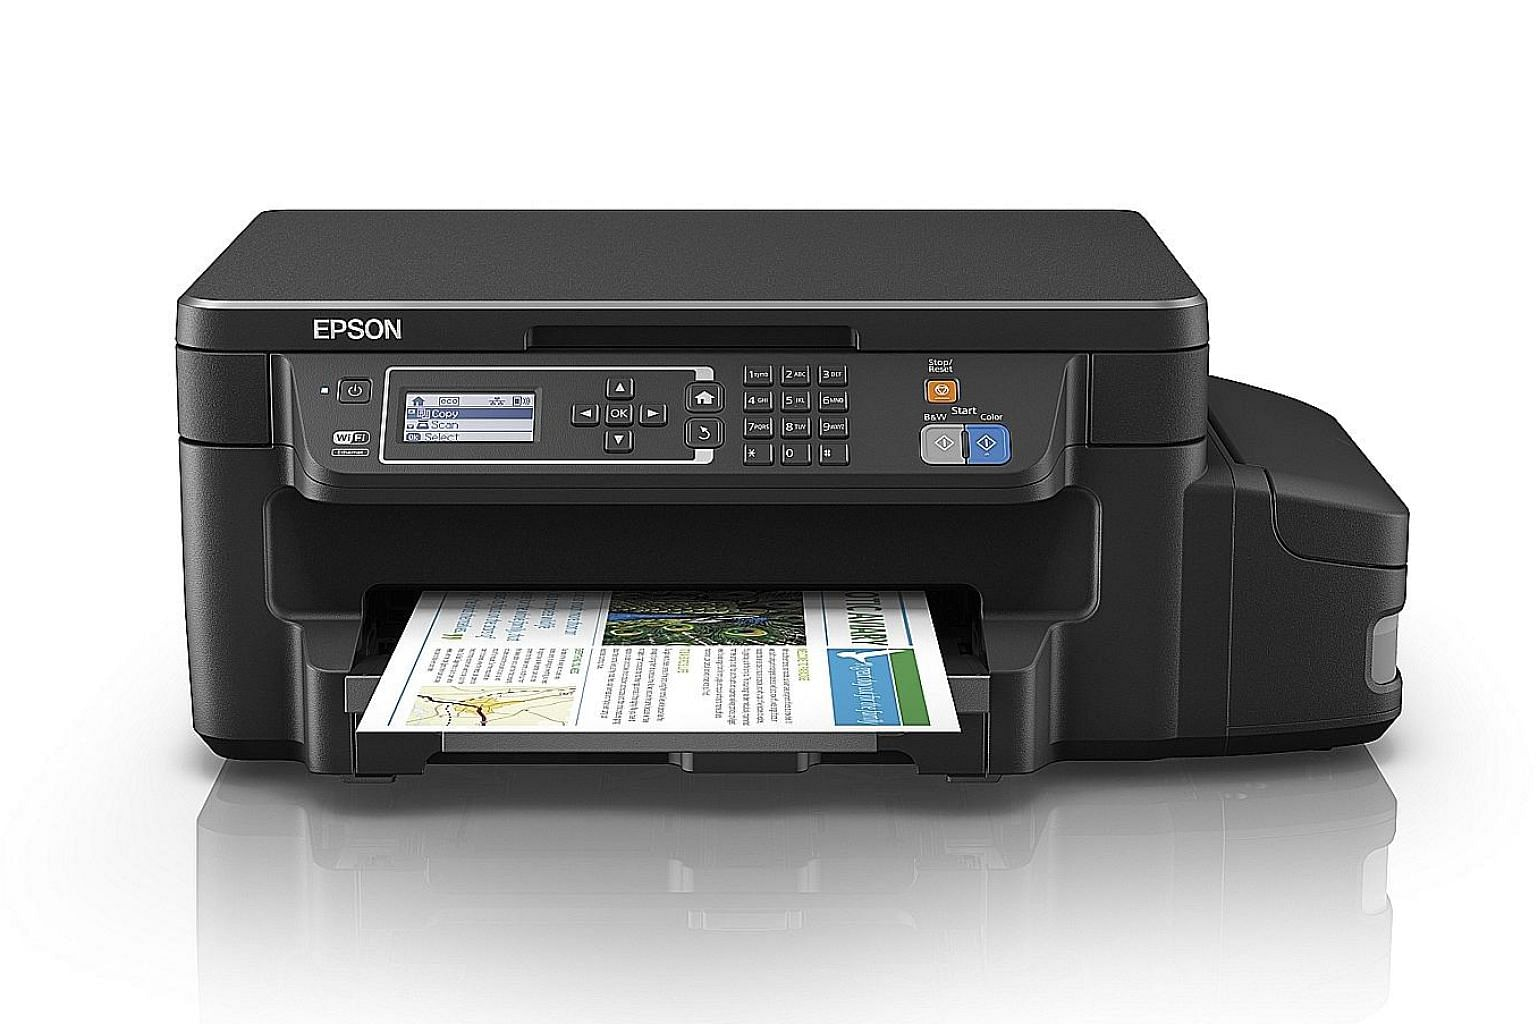 The Epson L605 Ink Tank System Printer has Wi-Fi functionality. Its own Wi-Fi network can connect up to four devices at the same time.